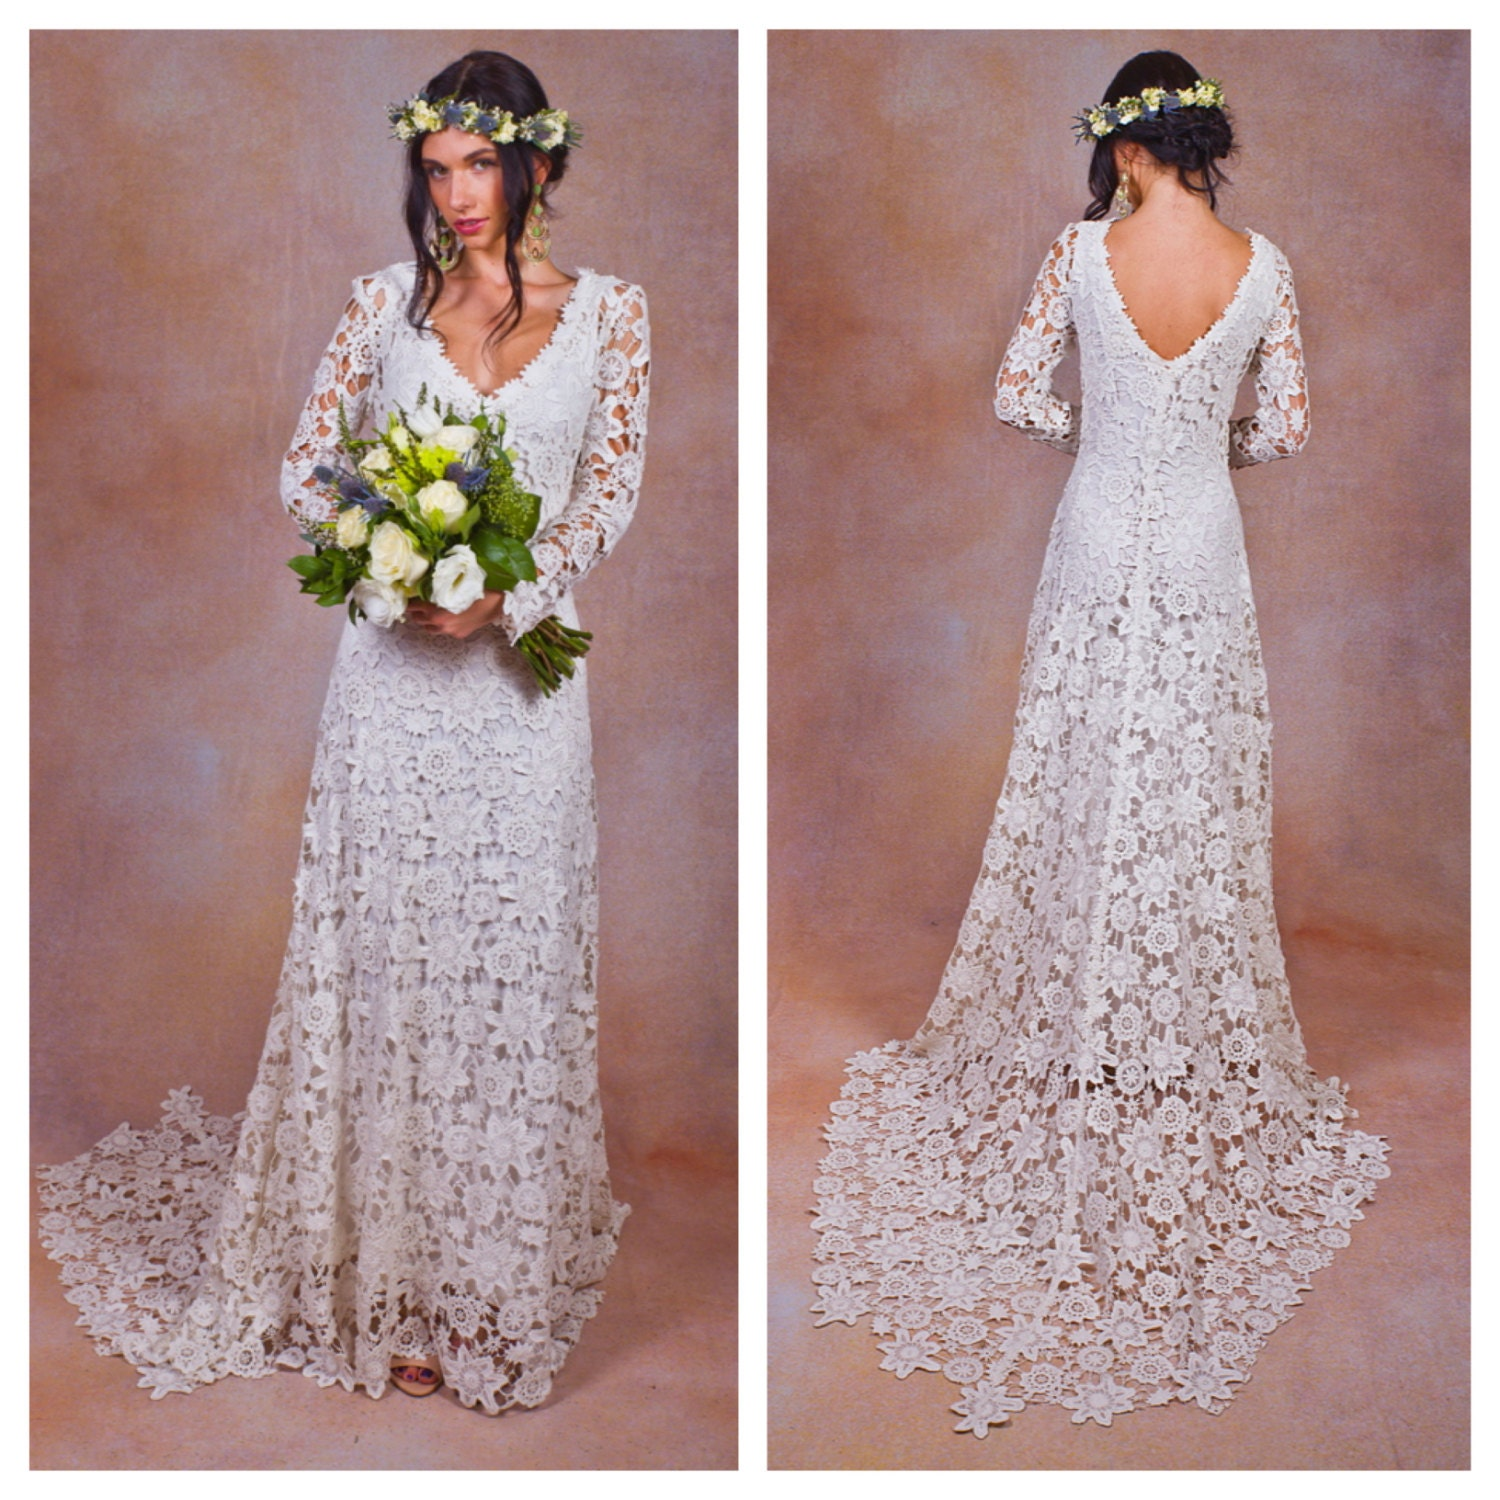 Bohemian Lace Crochet Hippie Wedding Dresses Rustic BOHO WEDDING DRESS